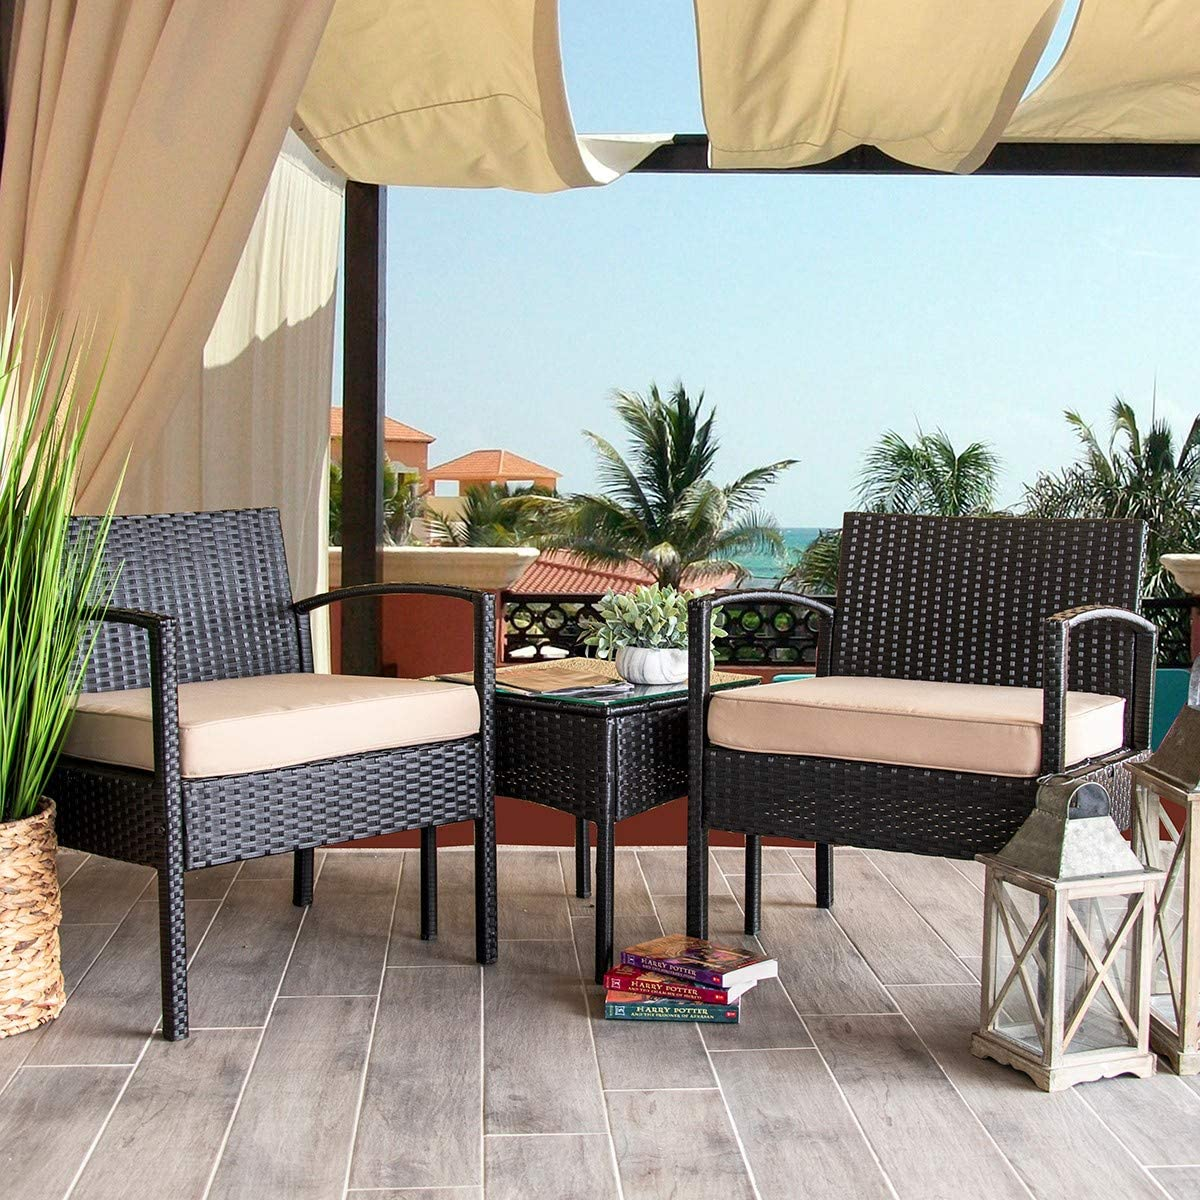 Barton 3PCS Patio Chair Set Patio Wicker Rattan Bistro Outdoor Chair Seat Thick Cushion w Glass Coffee Table Set